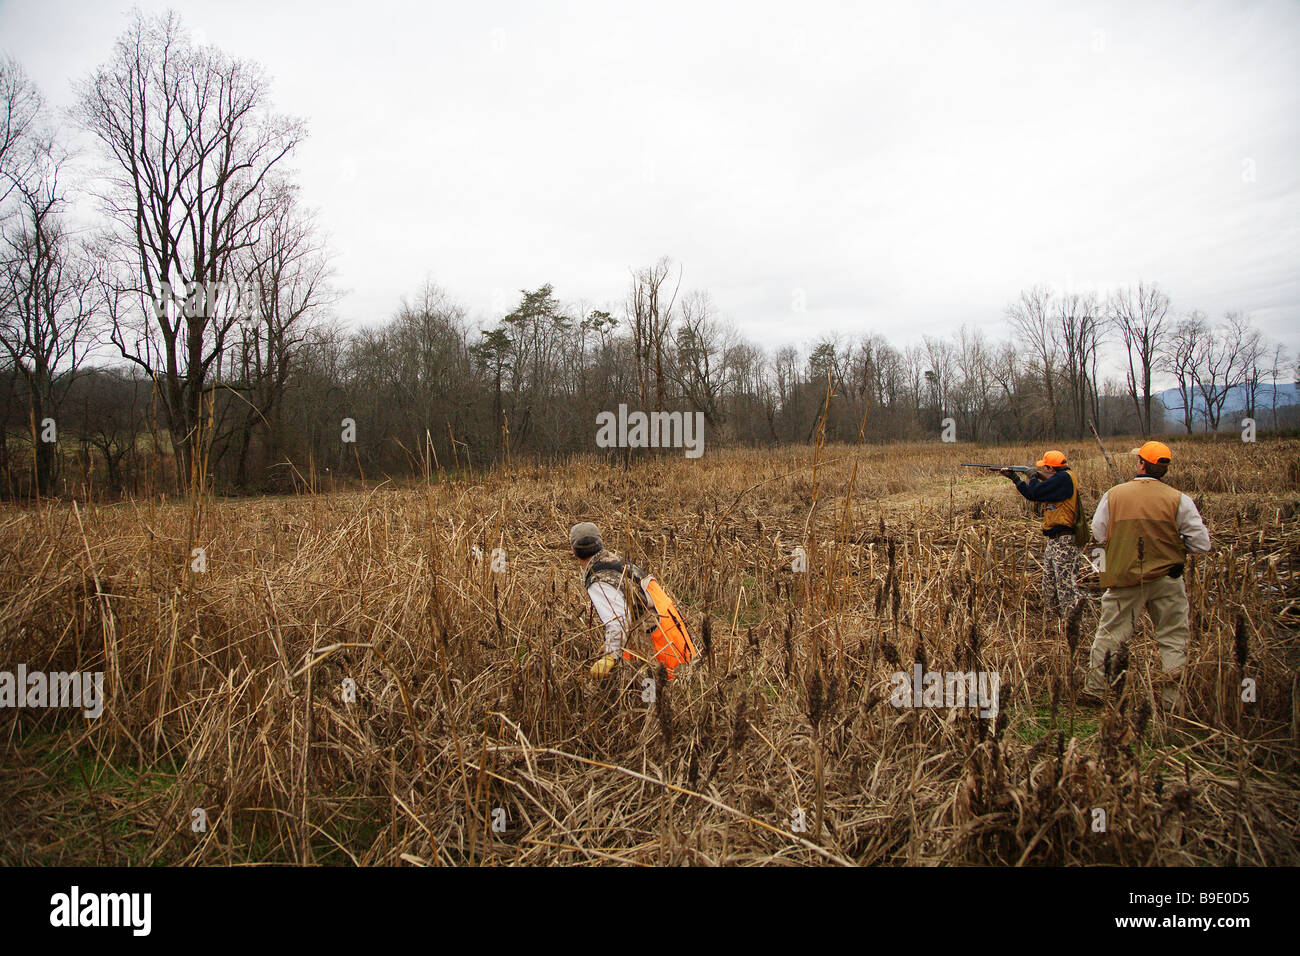 YOUTH HUNTER FIRING AT GAME FATHER AND HUNTING GUIDE LOOK ON